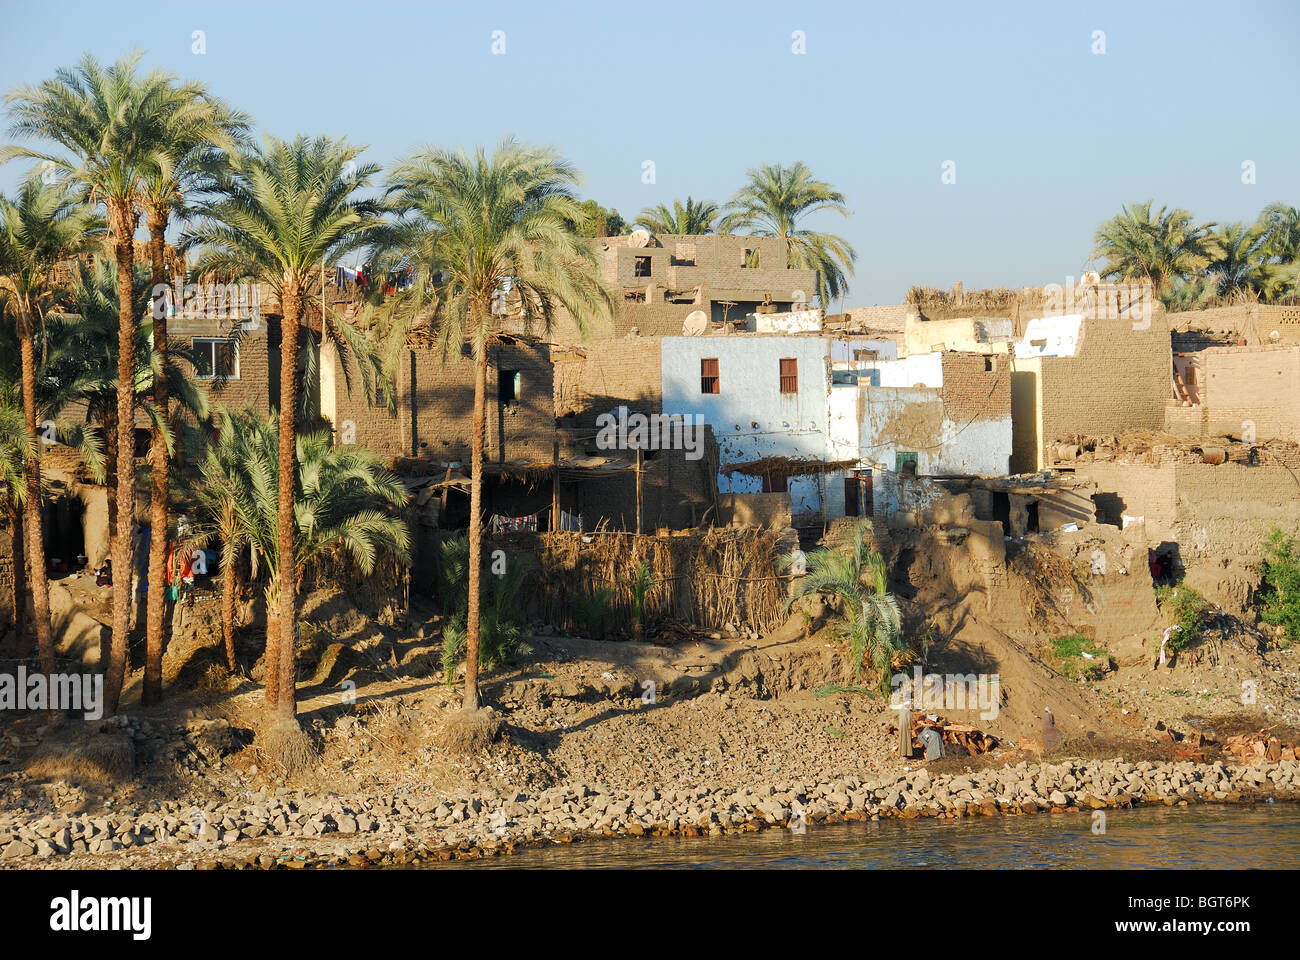 RIVER NILE, UPPER EGYPT. A village by the Nile between Luxor and Aswan. 2009. - Stock Image